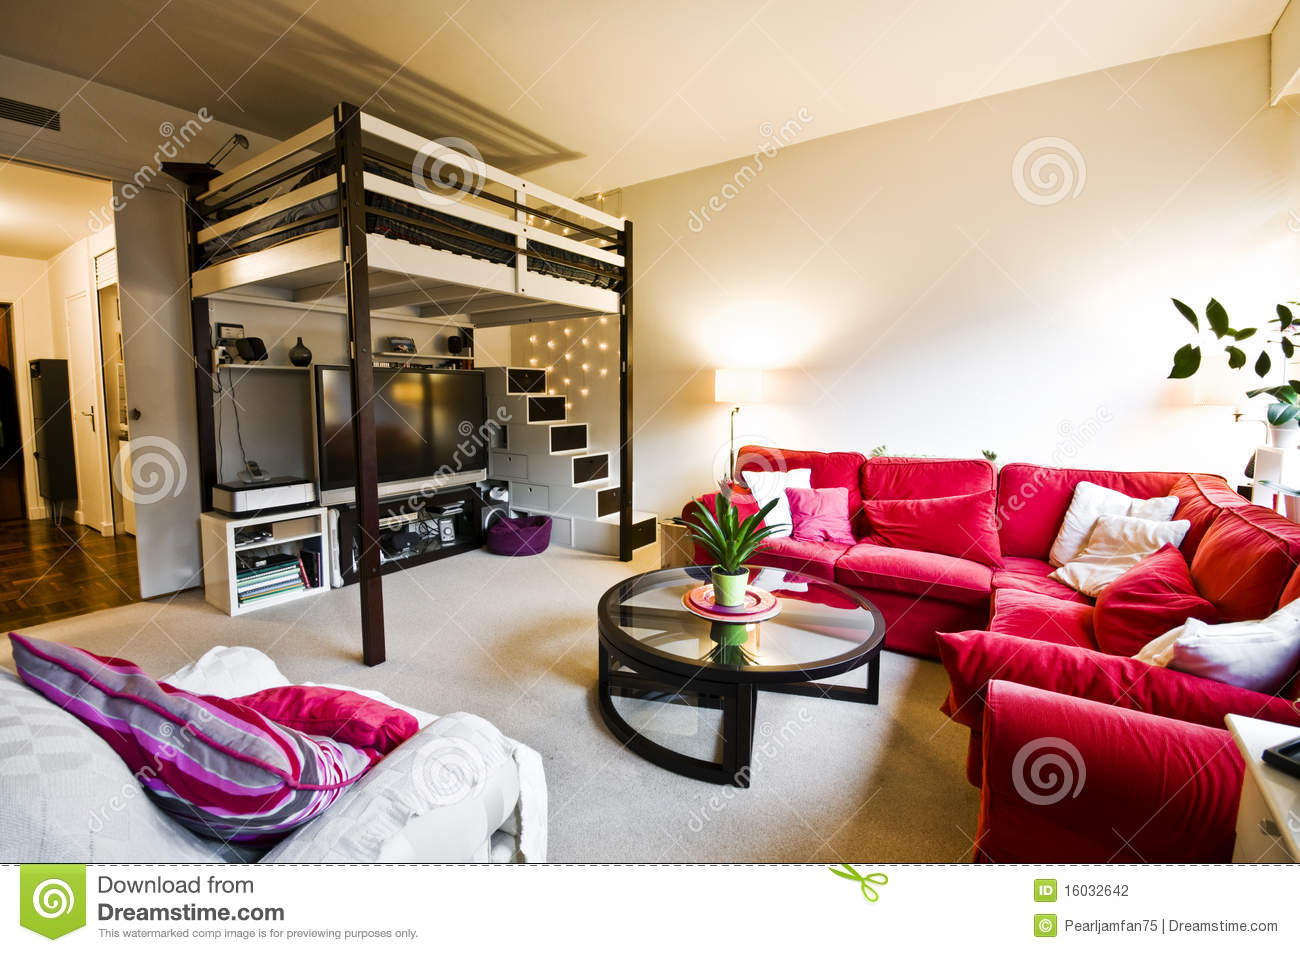 Download Home Interior Stock Photo. Image Of French, Couch, Apartment    16032642